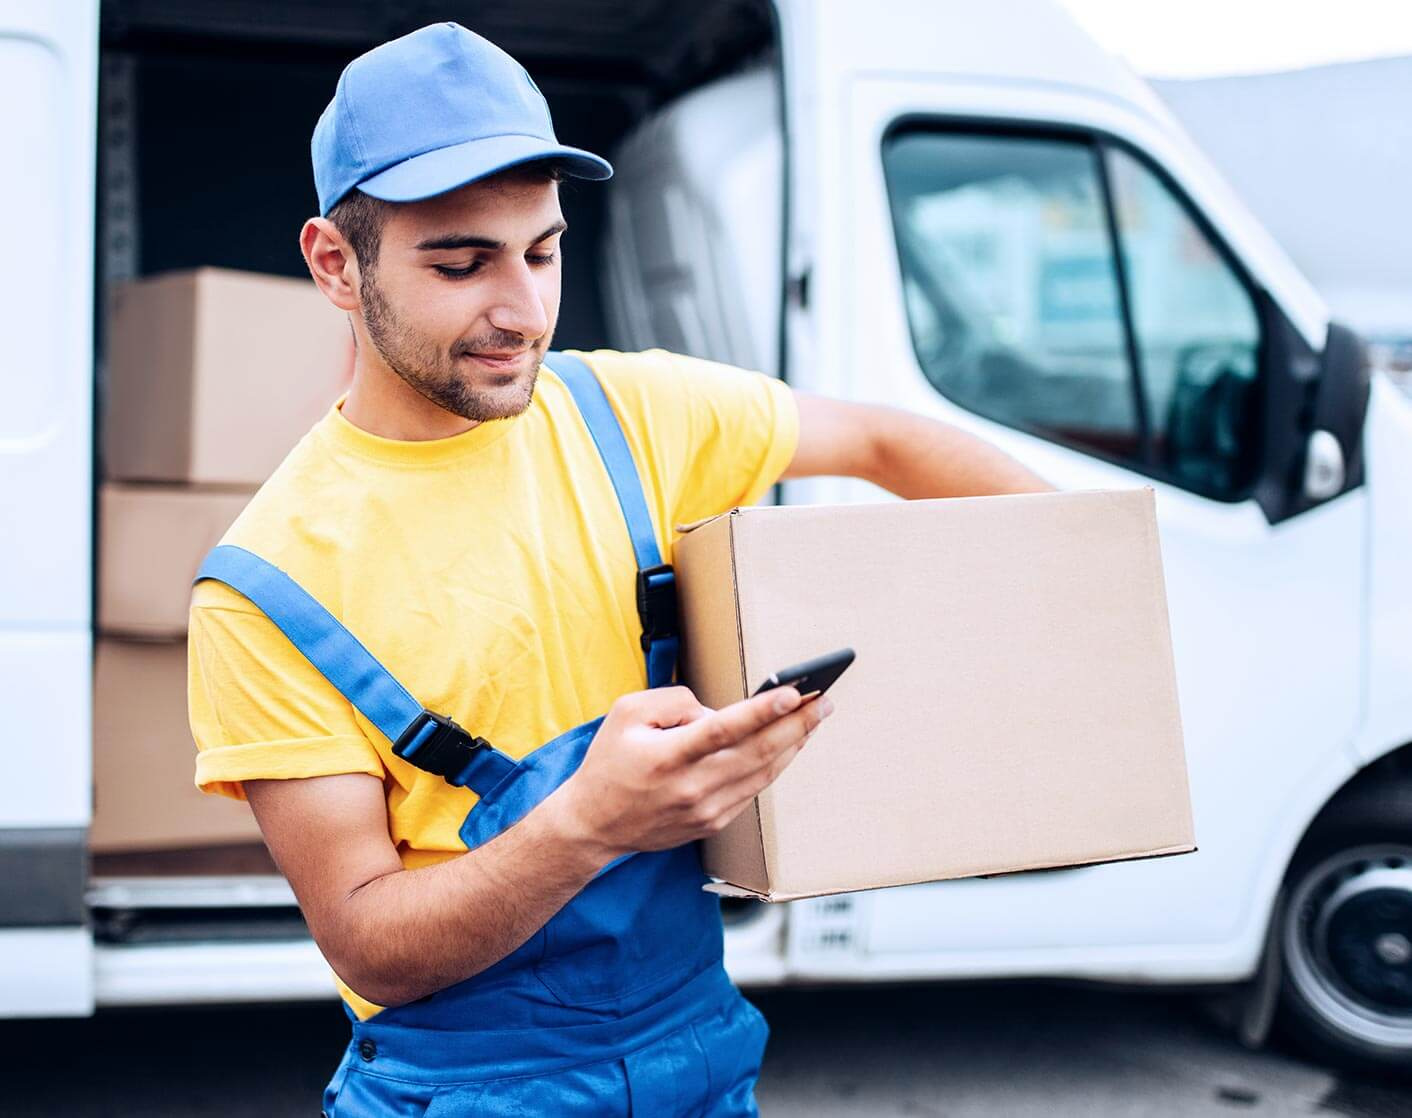 white man dressed as a courier delivering a package wearing a yellow shirt and blue overalls